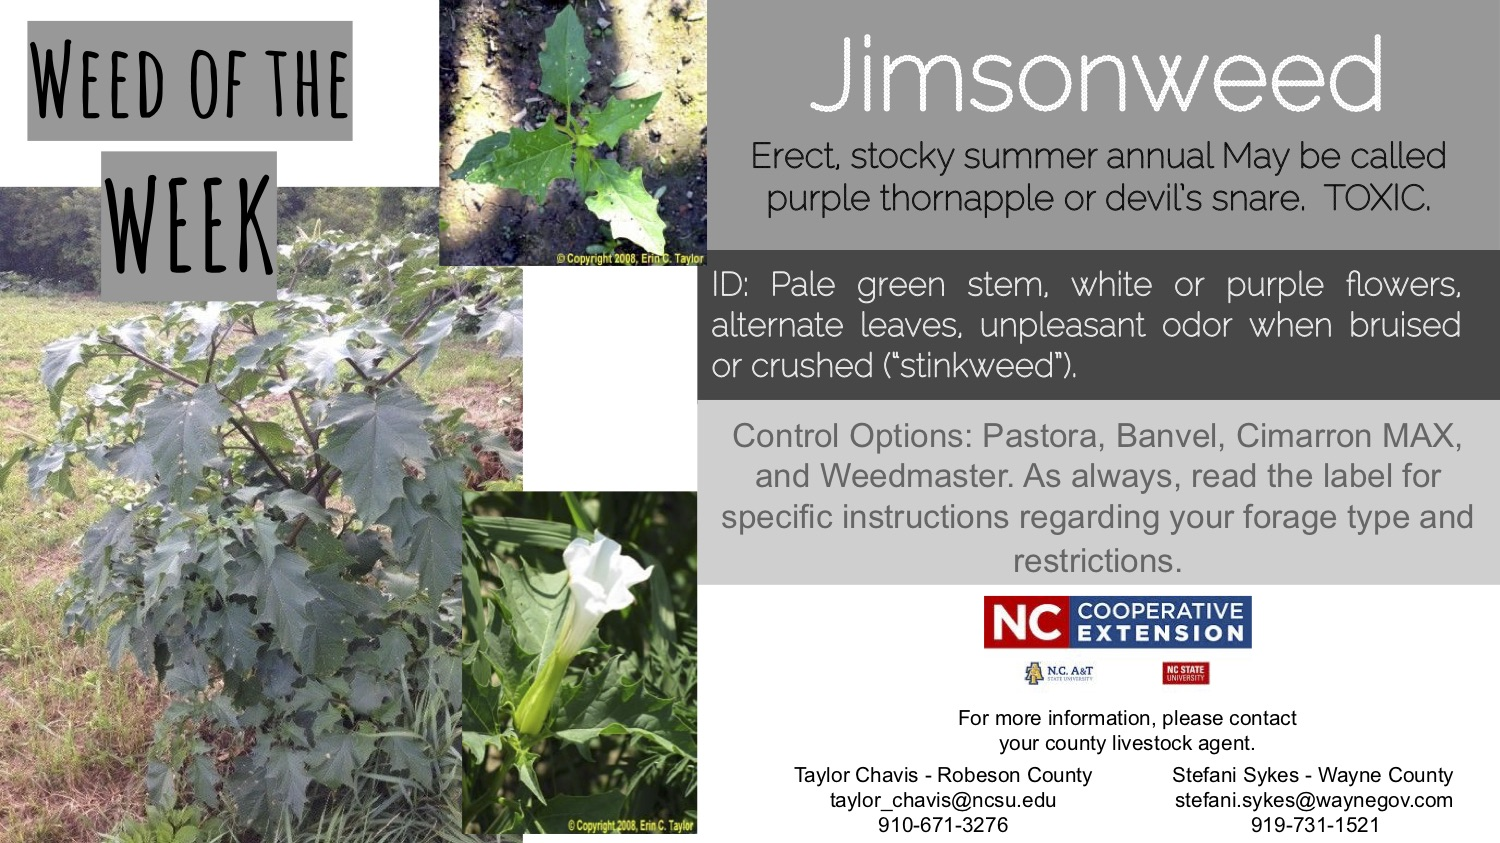 INformation about the weed Jimsonweed